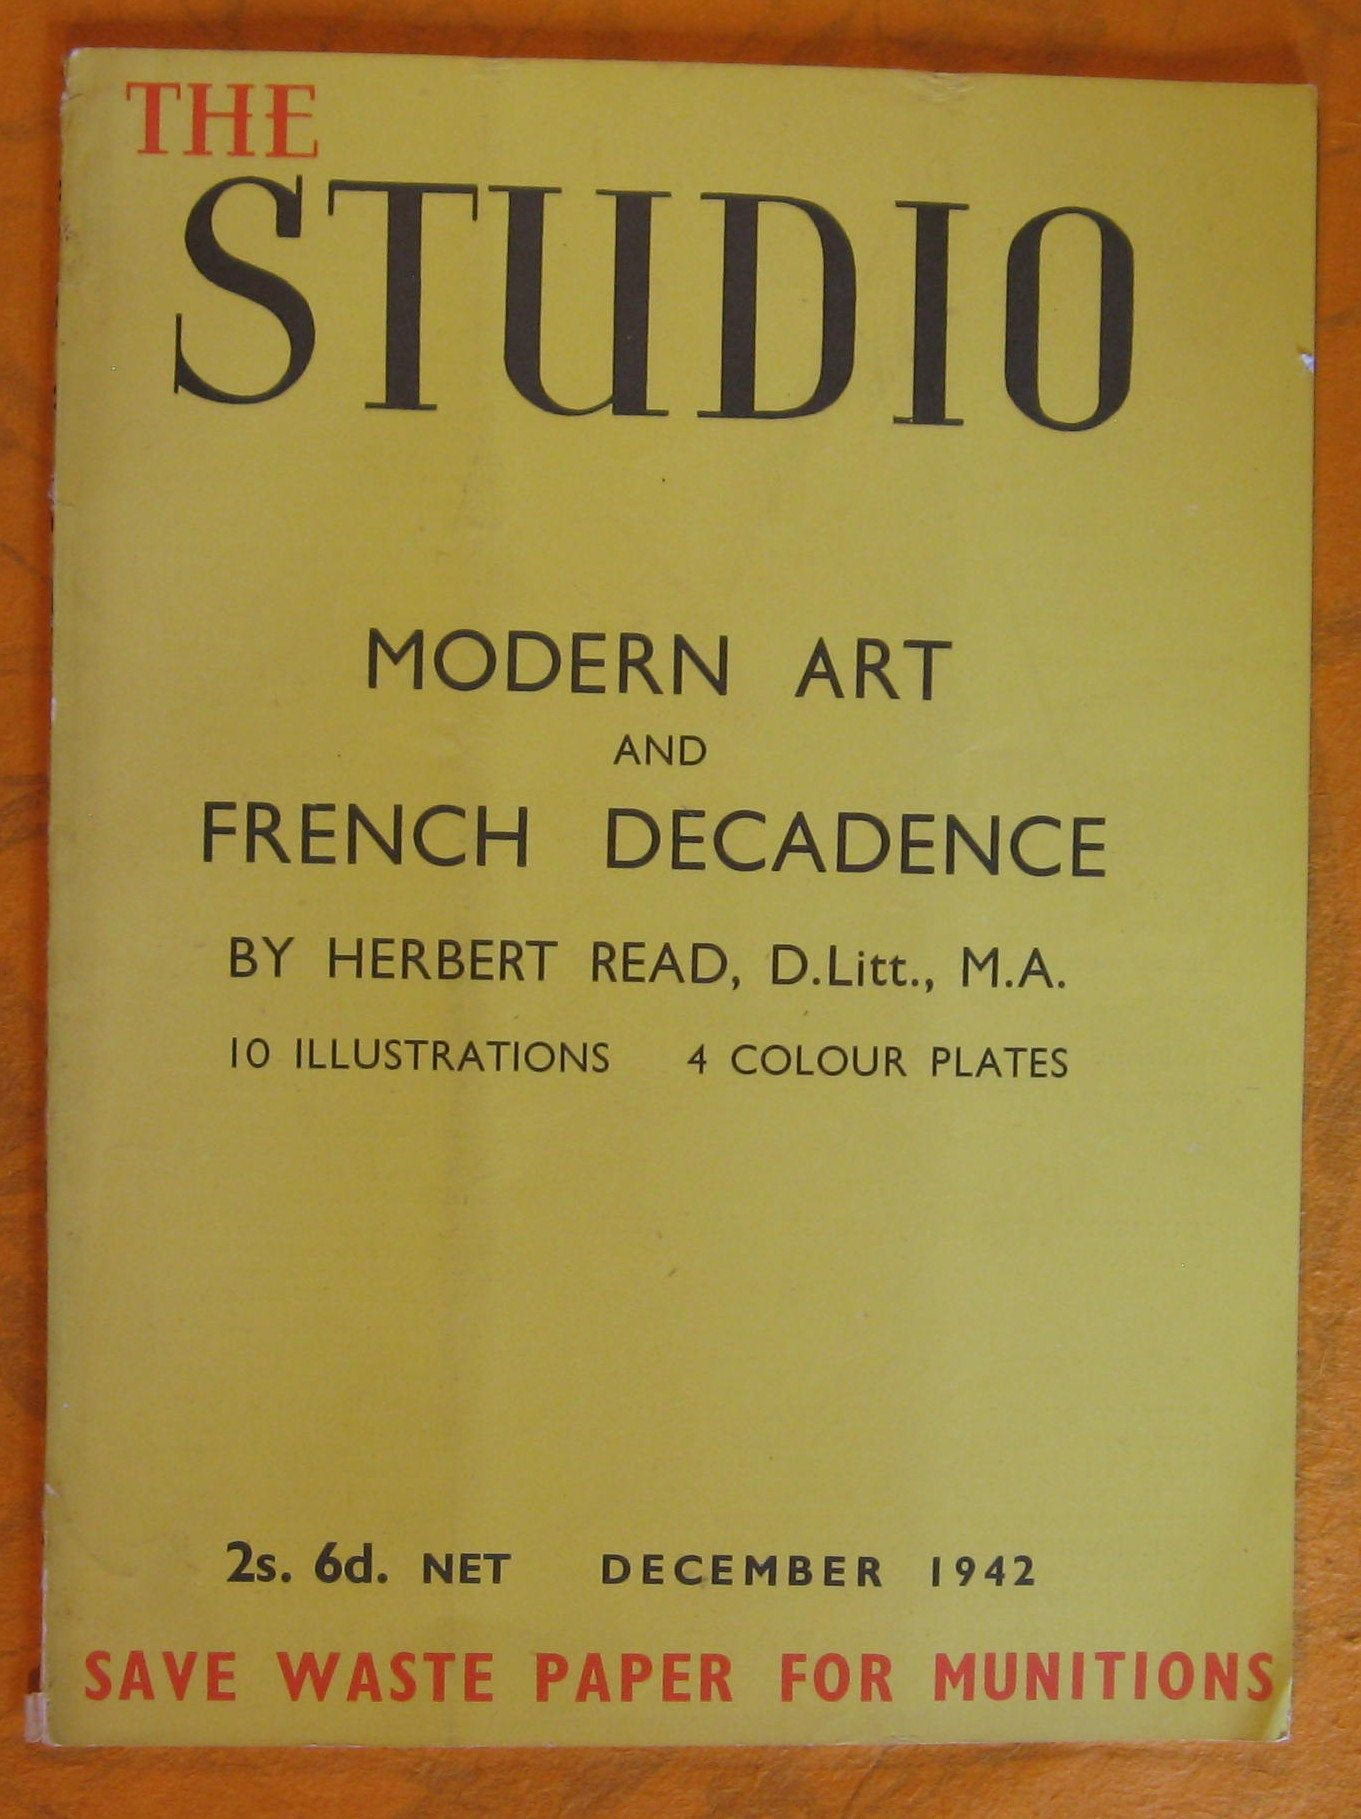 The Studio: Modern Art and French Decadence (December, 1942) by Herbert Read by Pistilbooks on Etsy